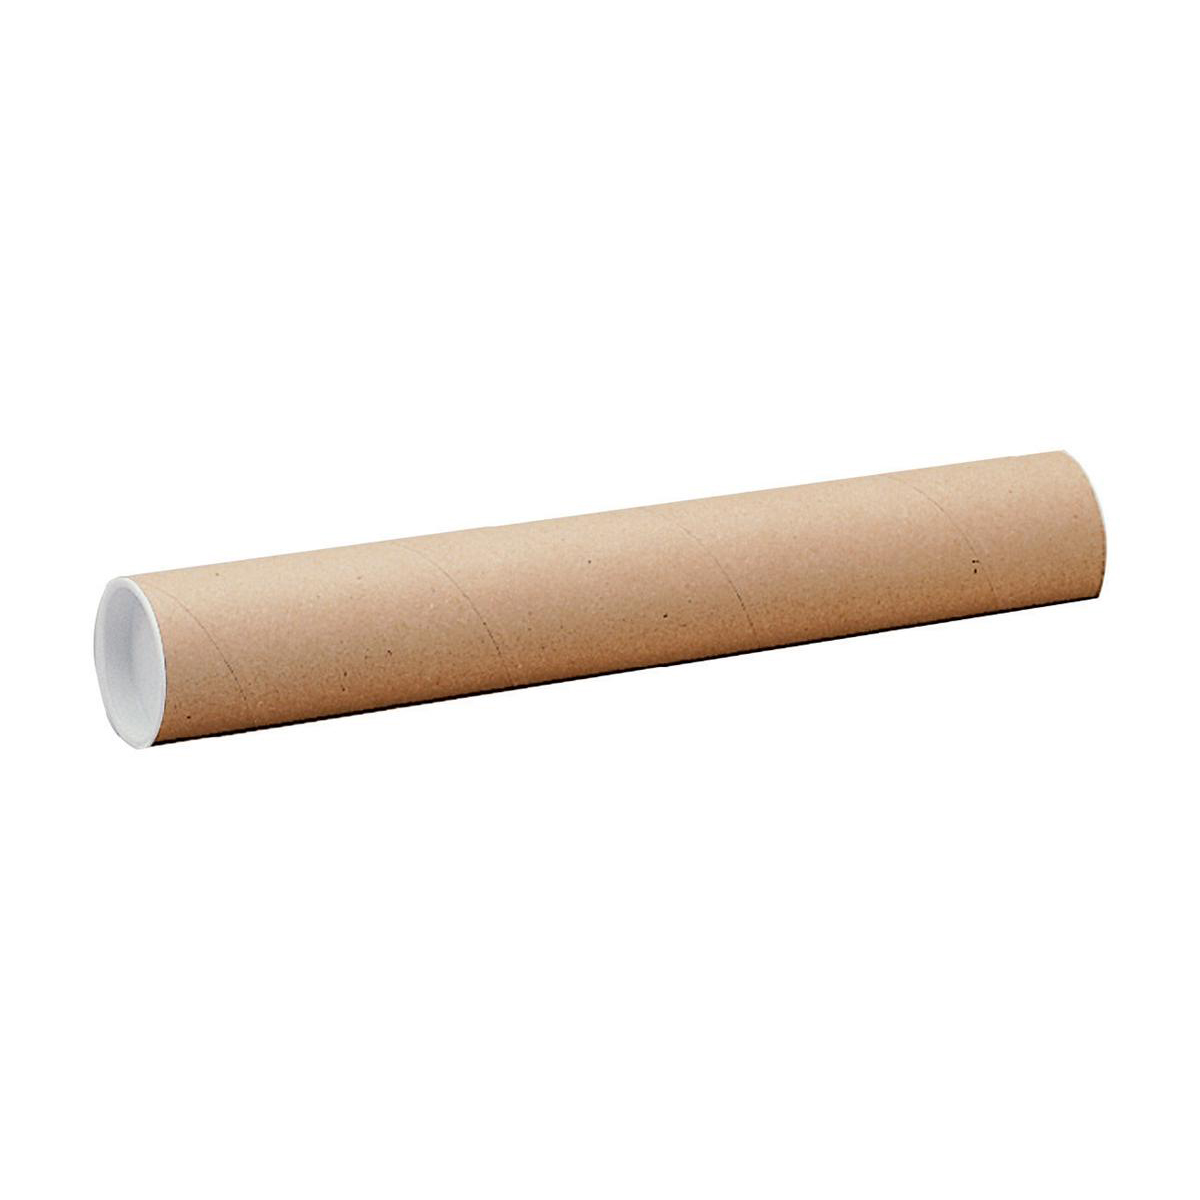 Postal Tube Cardboard with Plastic End Caps A2 L450xDia.50mm PT 450/50MM Pack 25